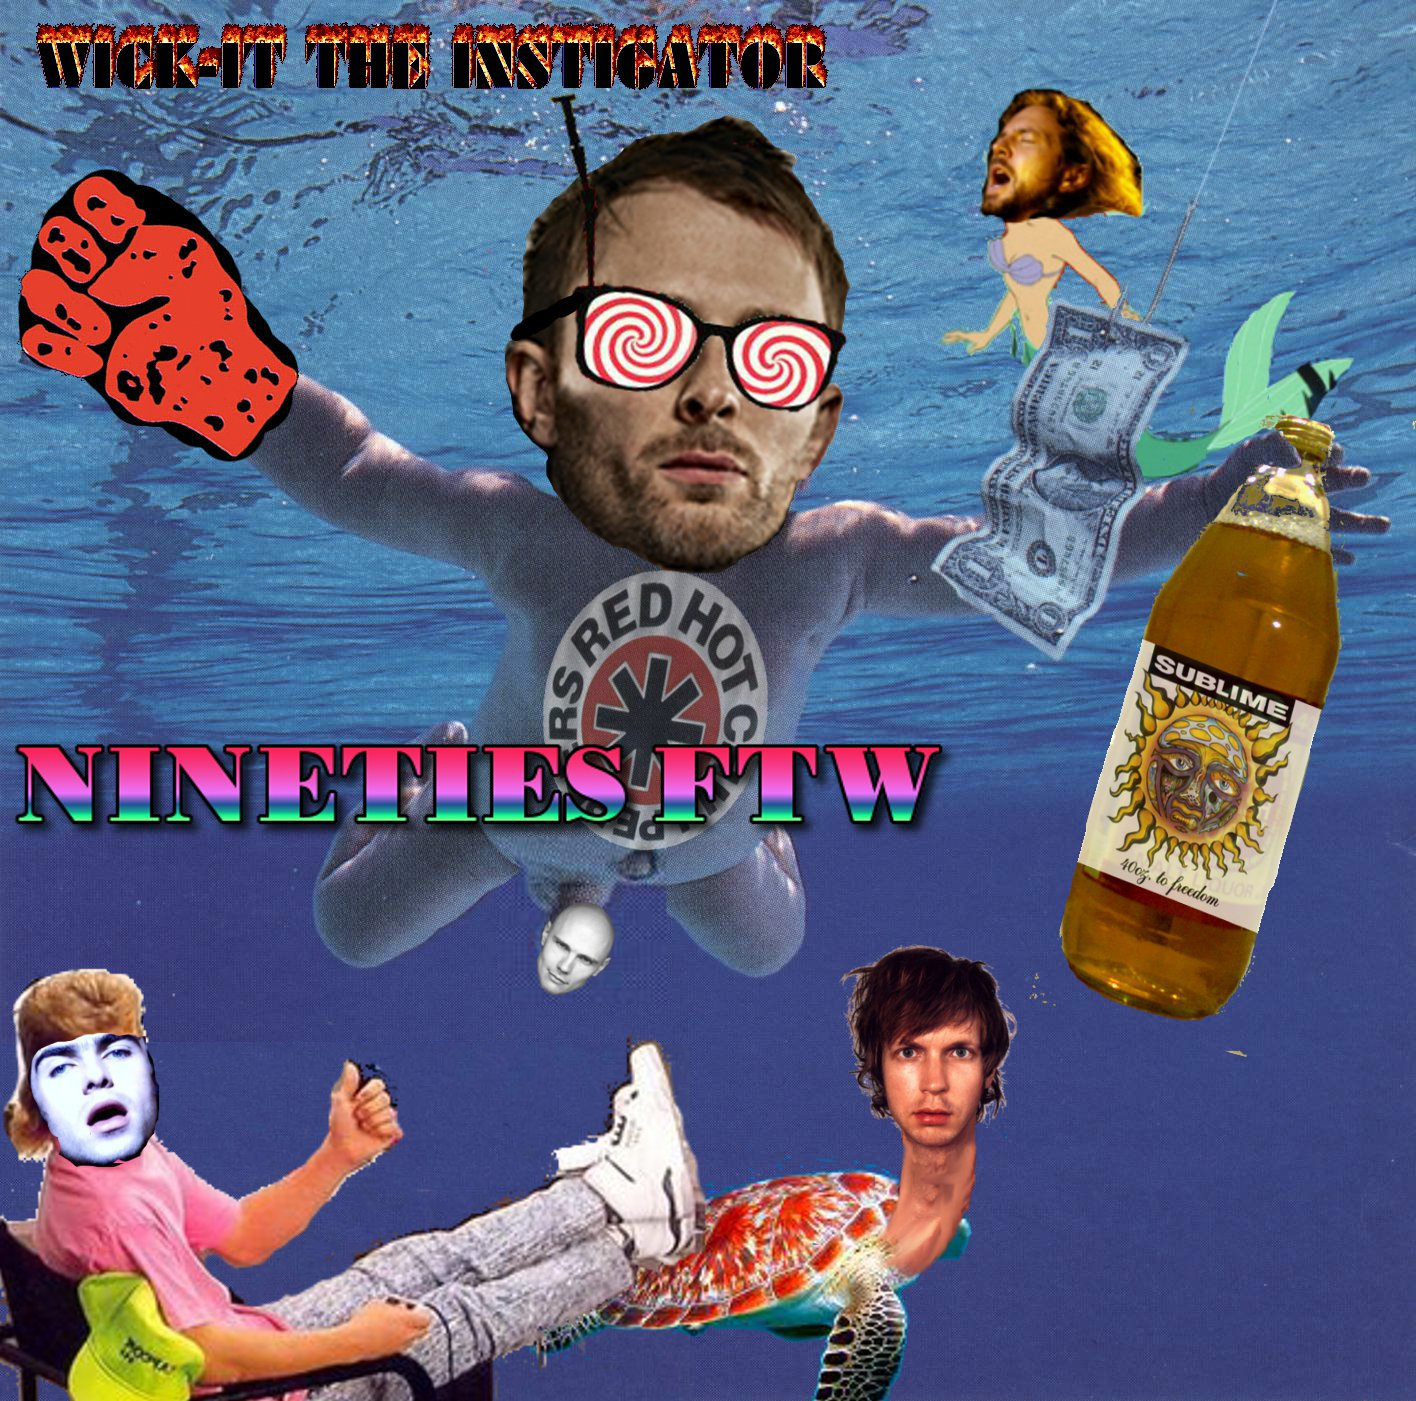 Nineties FTW (Wick-it's 90's Rock Nostalgia Overdose Mashup) – By Wick-it the Instigator